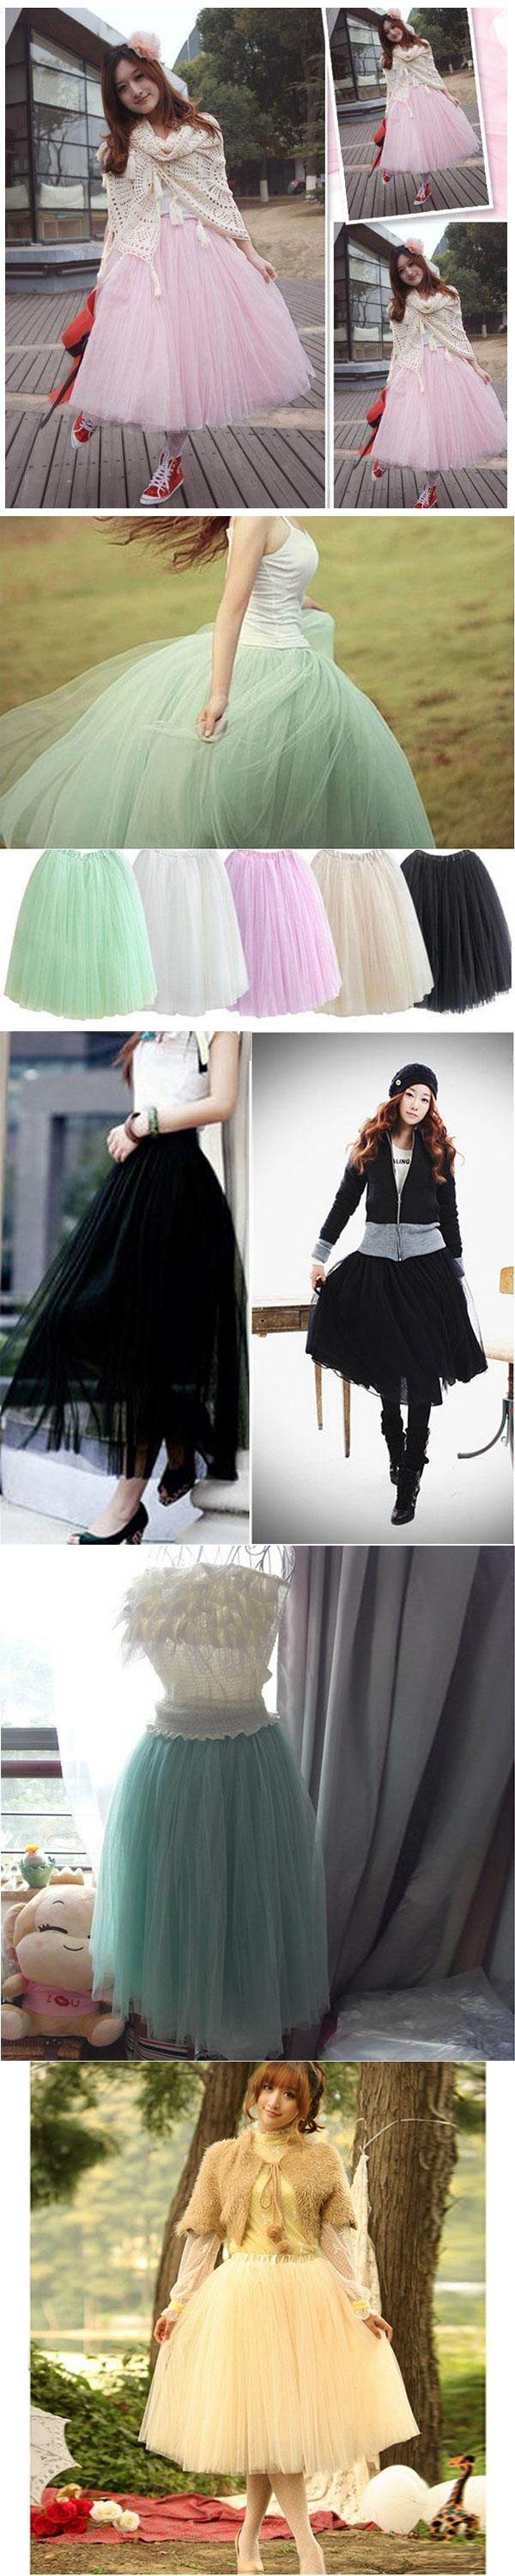 Women Lace Adult Tutu Skirt 5 layers Voile Tulle Skirt Bouffant Long Princess Puffy Skirt Autumn Ball Gown Pleated Midi Skirts